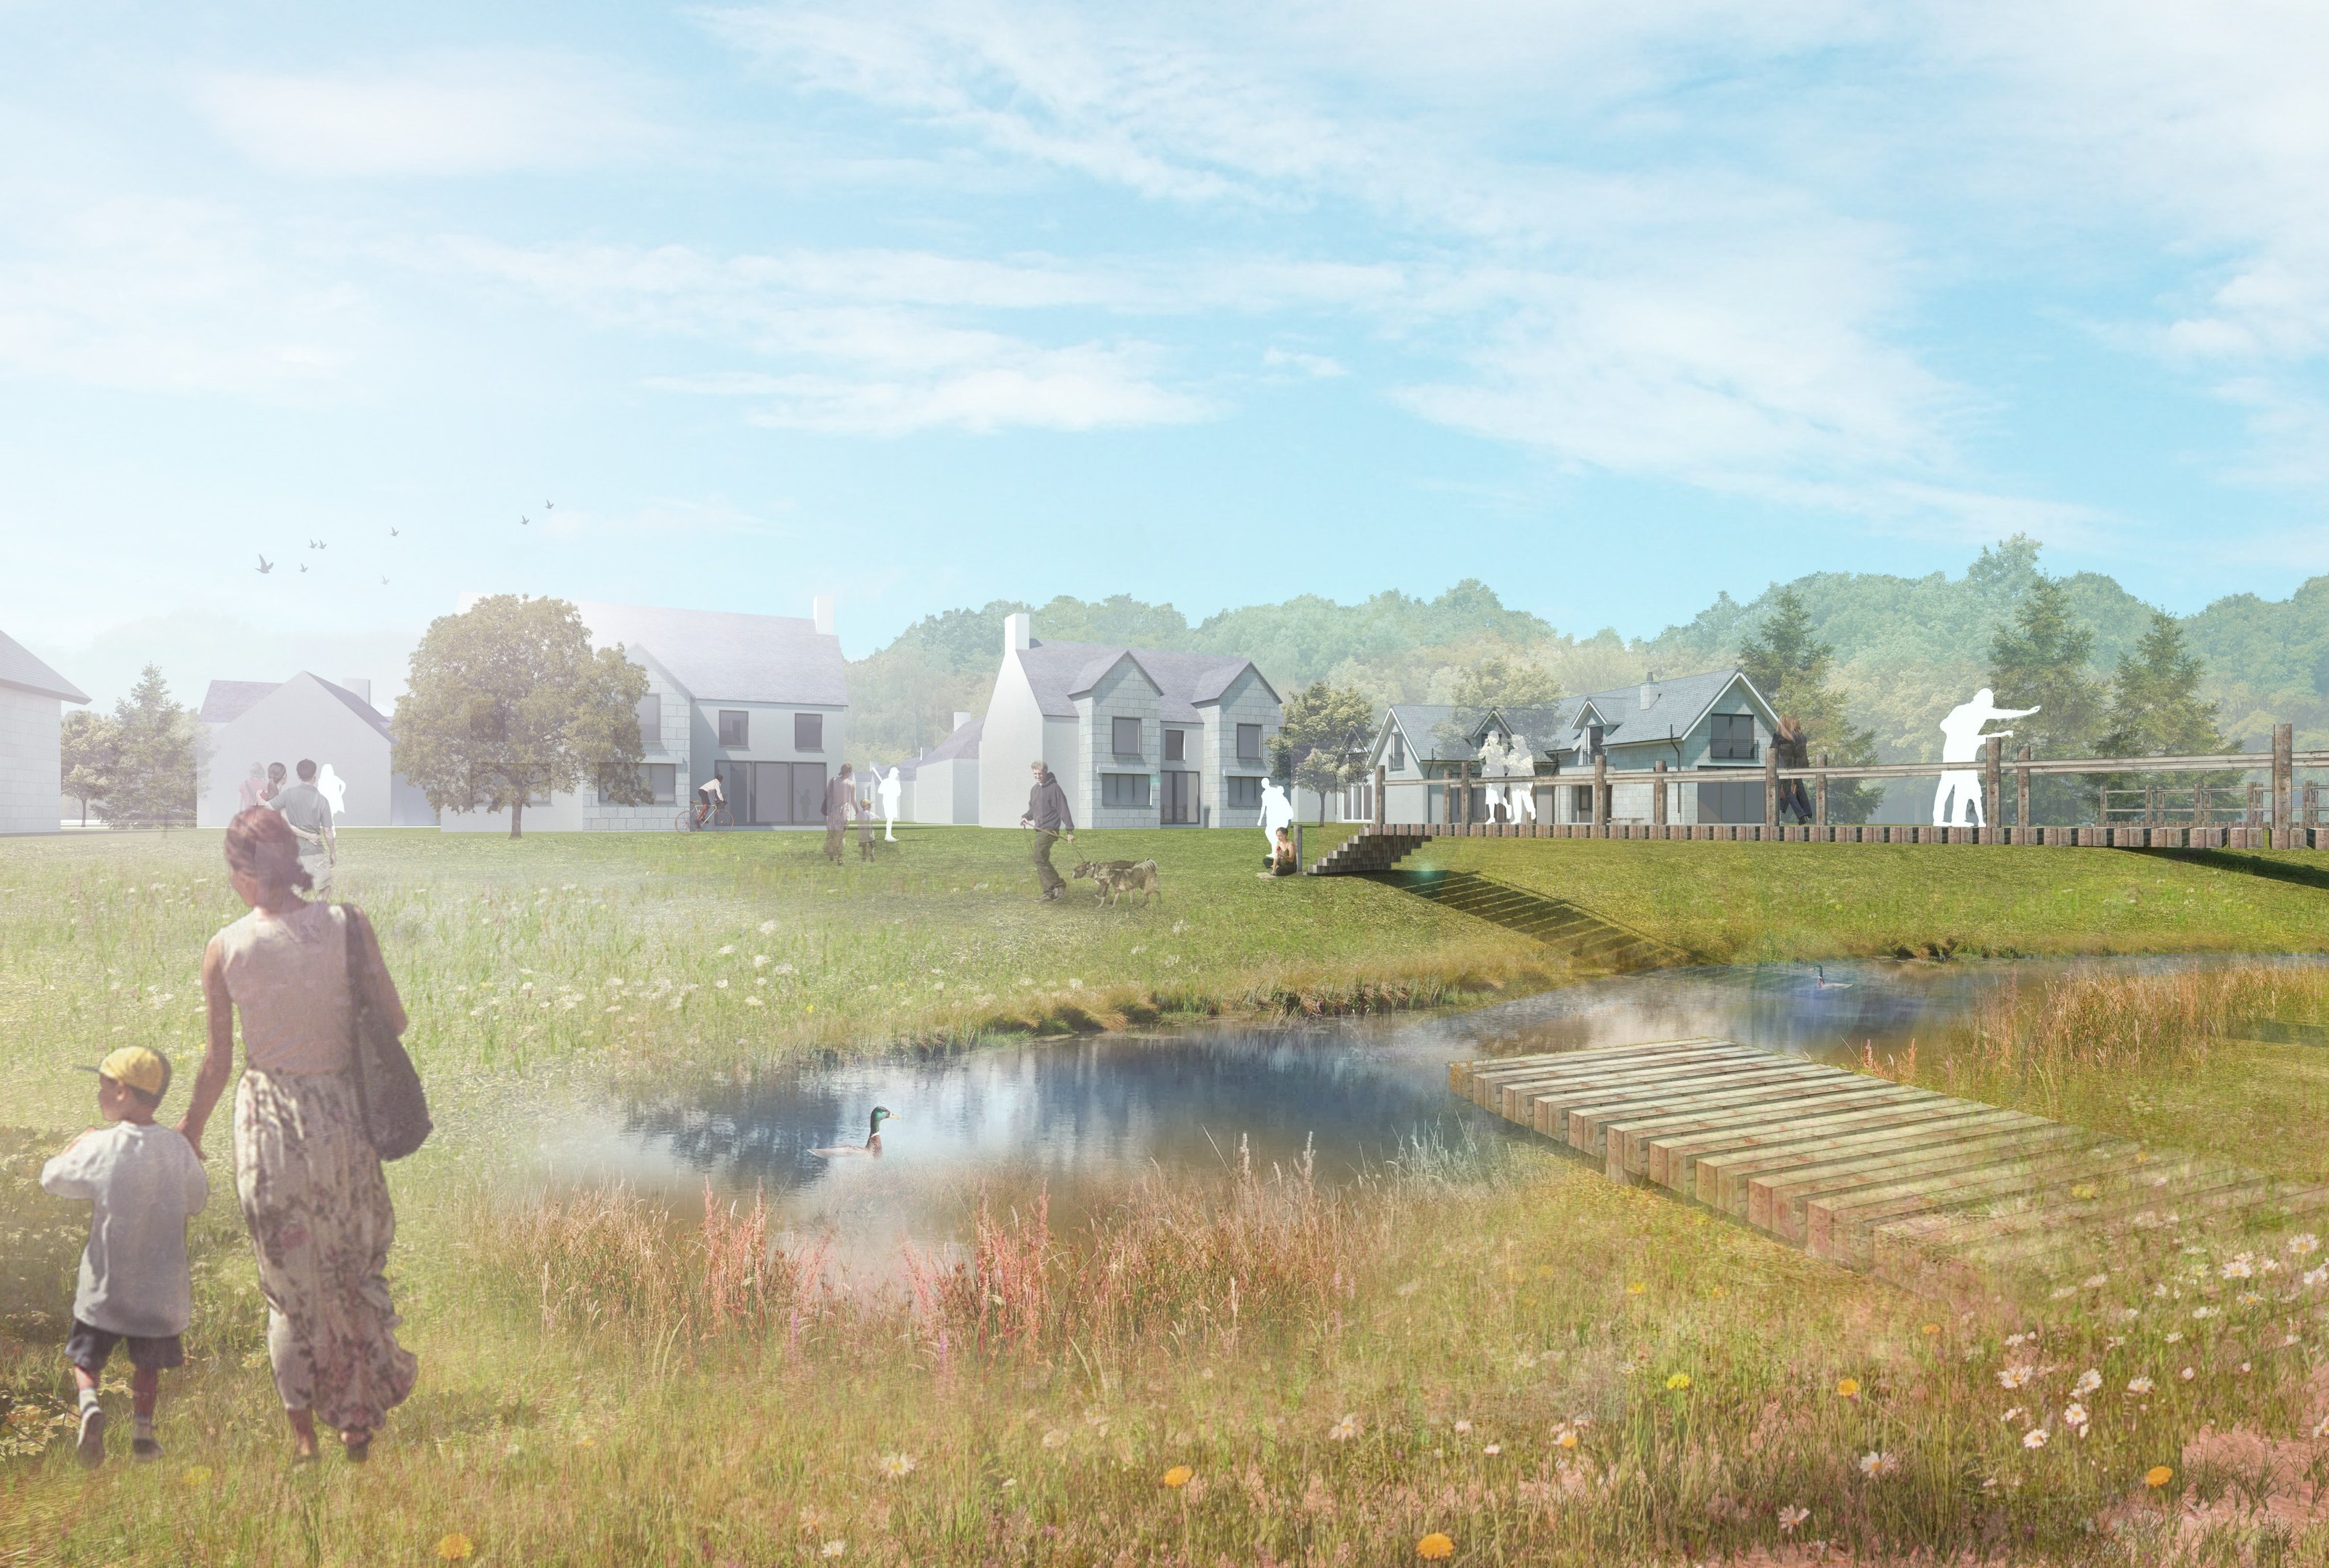 An artist's impression of how Kincluny Village would have looked.